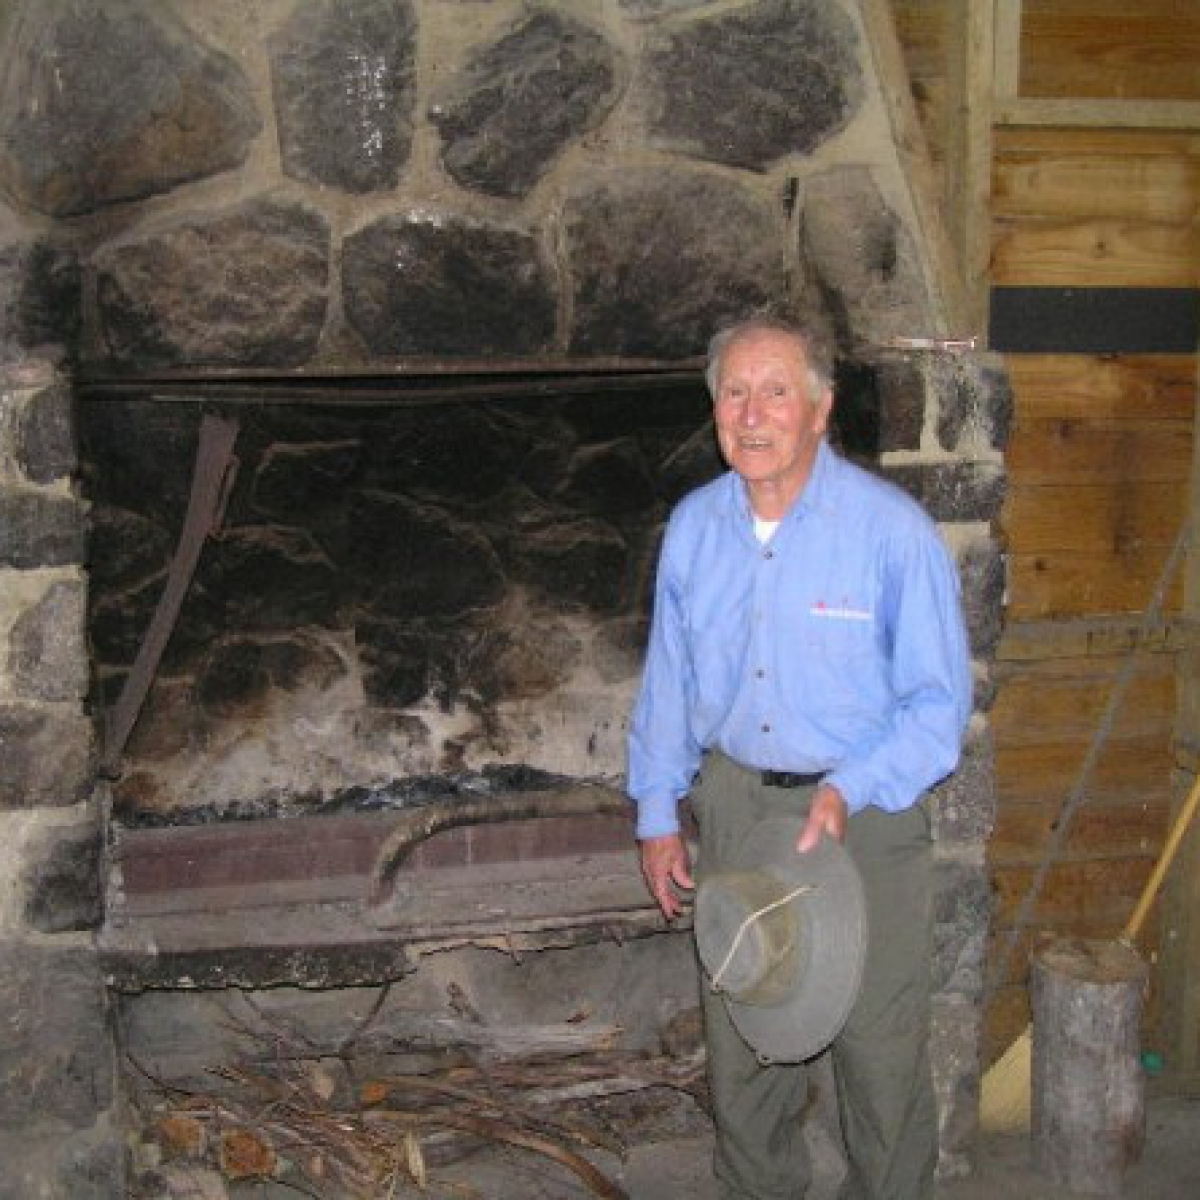 Frank Clements in Frank and Jack's Hut